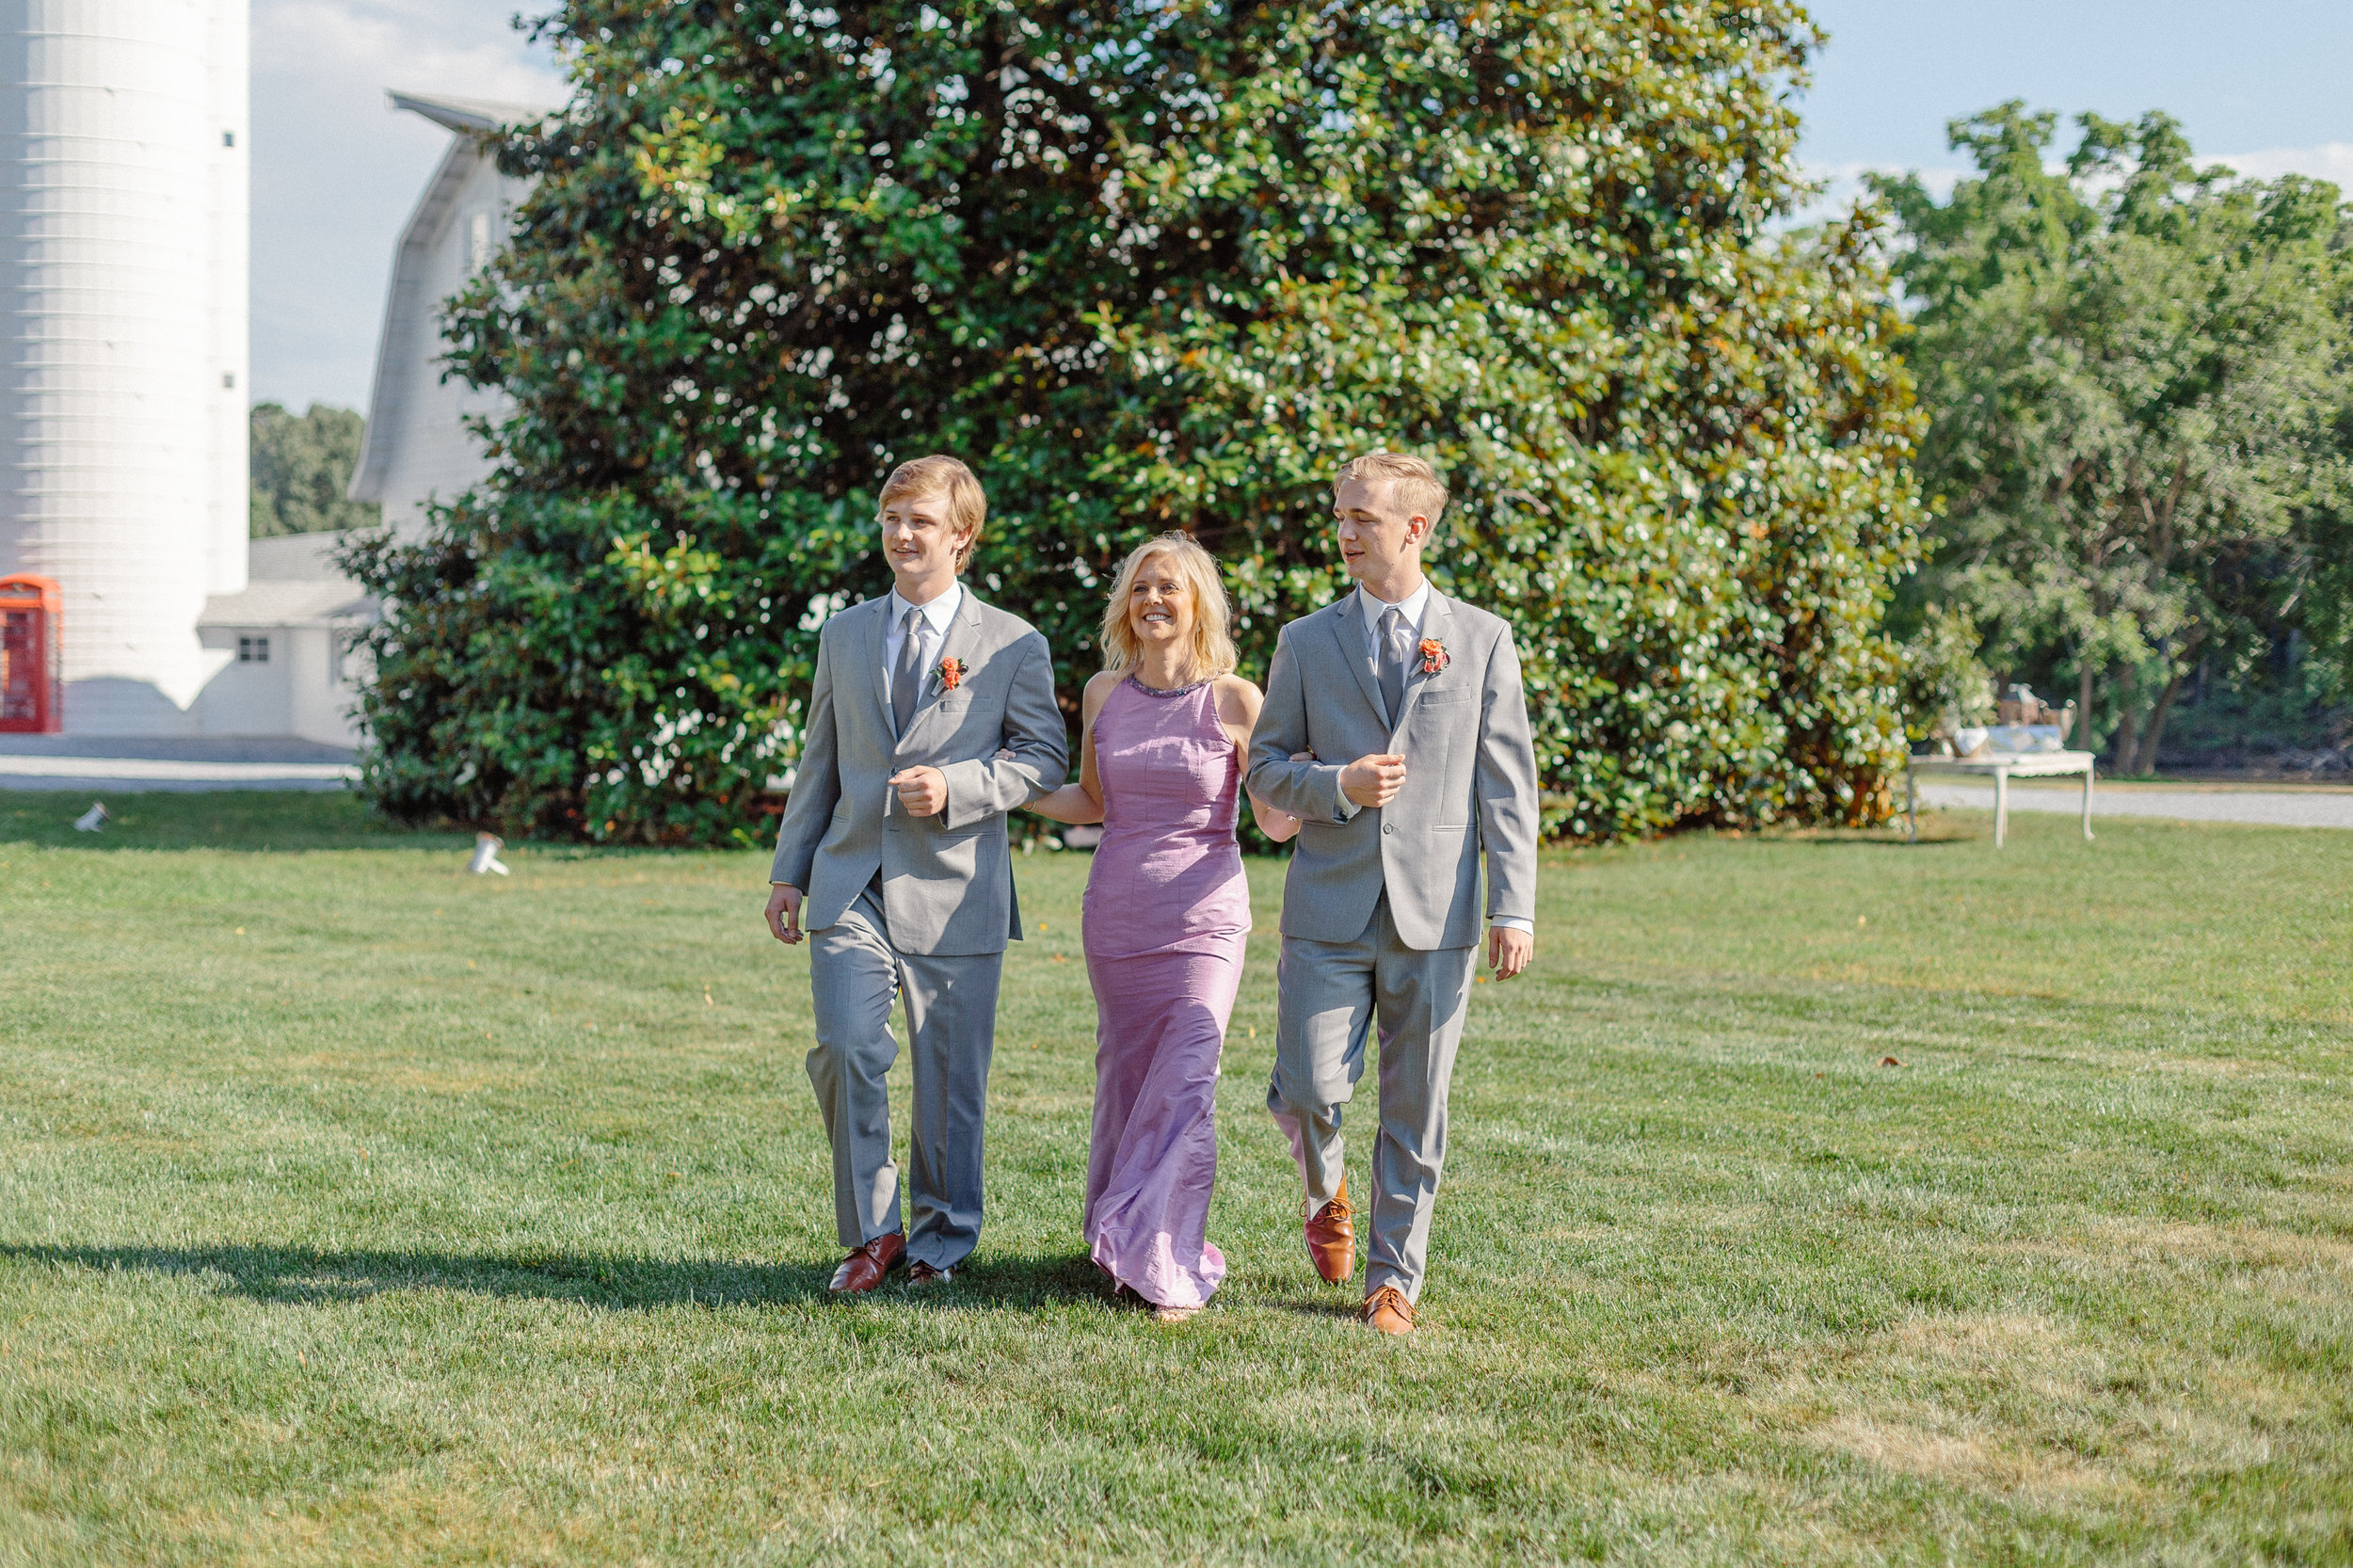 wedding-day-processional-ideas-examples-of-parents